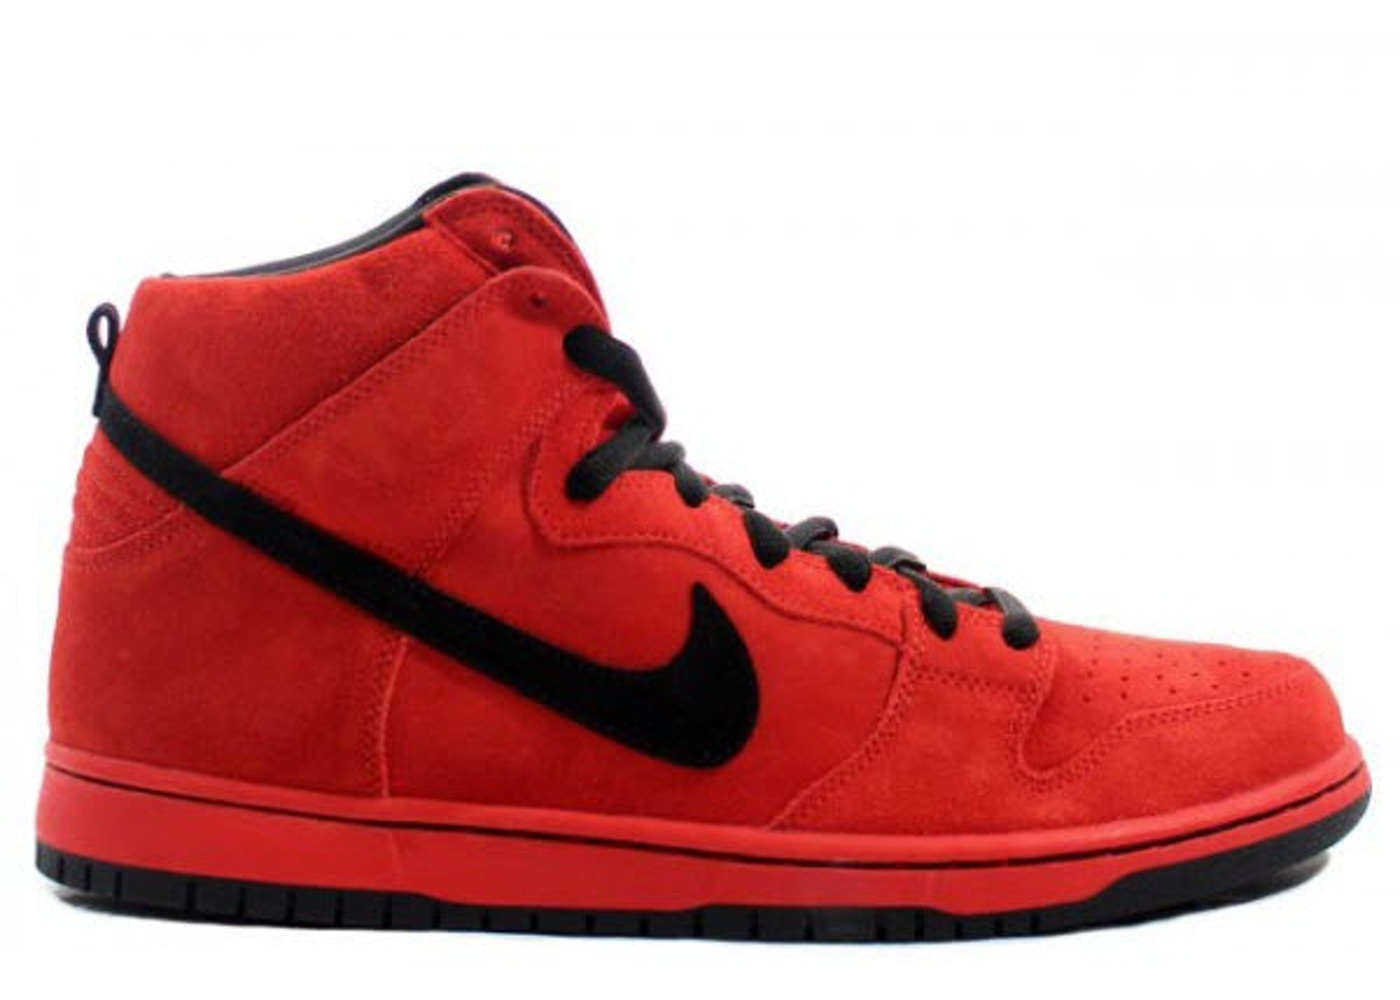 reputable site de7e8 620a5 Sell. or Ask. Size 8. View All Bids. Nike Dunk SB High Red Devil